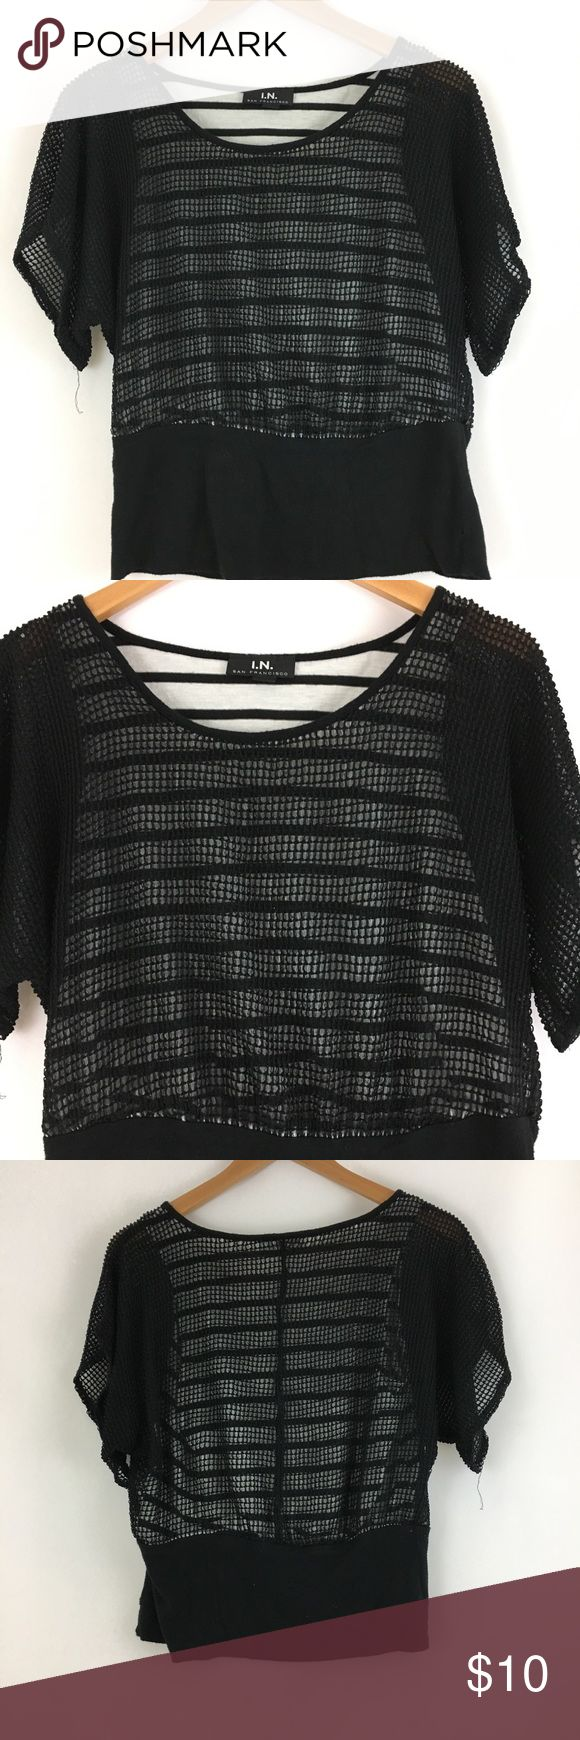 90s Black Mesh Batwing Striped Shirt Black and white stripe mesh batwing shirt. In great condition. Length 21 inches. Crochet lace 100% polyester. Tank 65% polyester 35% rayon. Tops